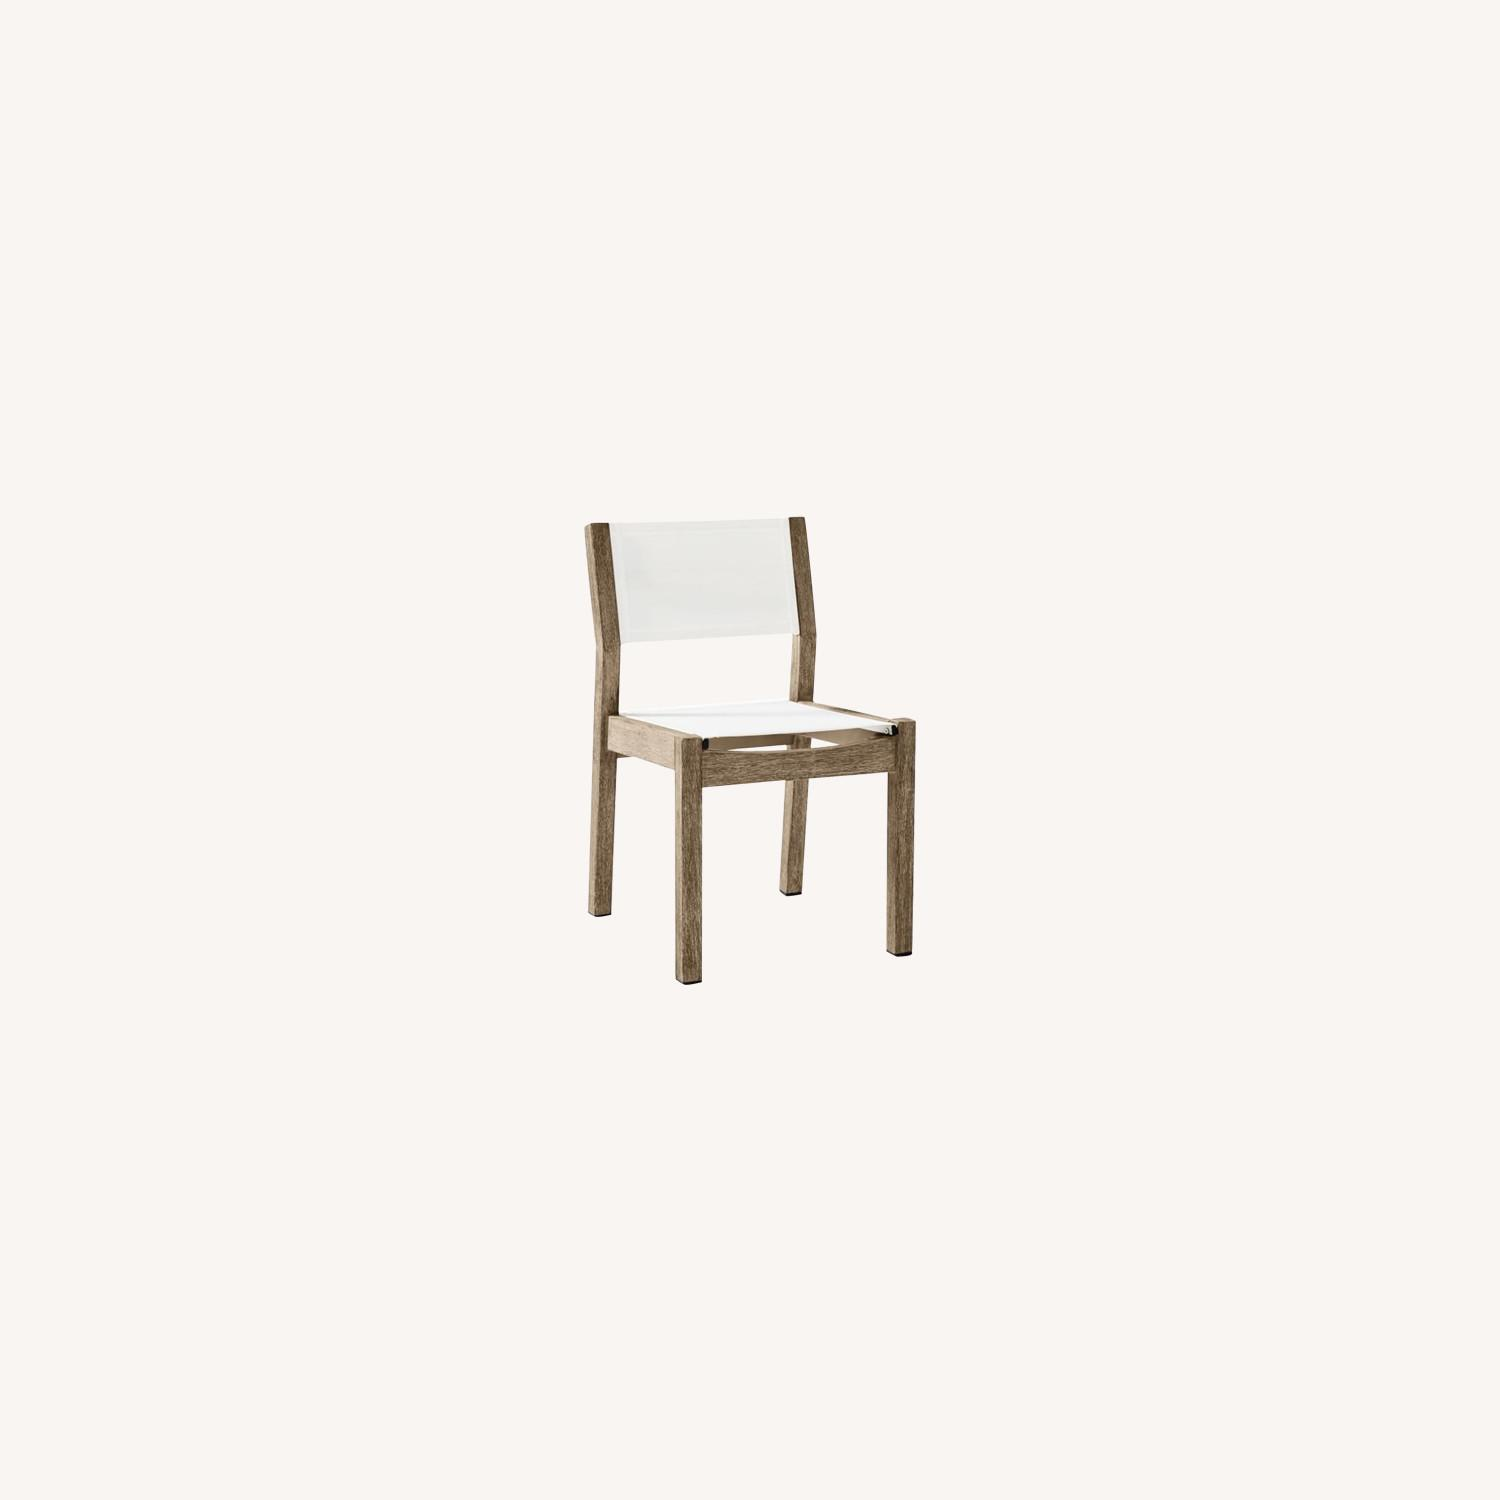 West Elm Portside Dining Chair (Set of 2) - image-0